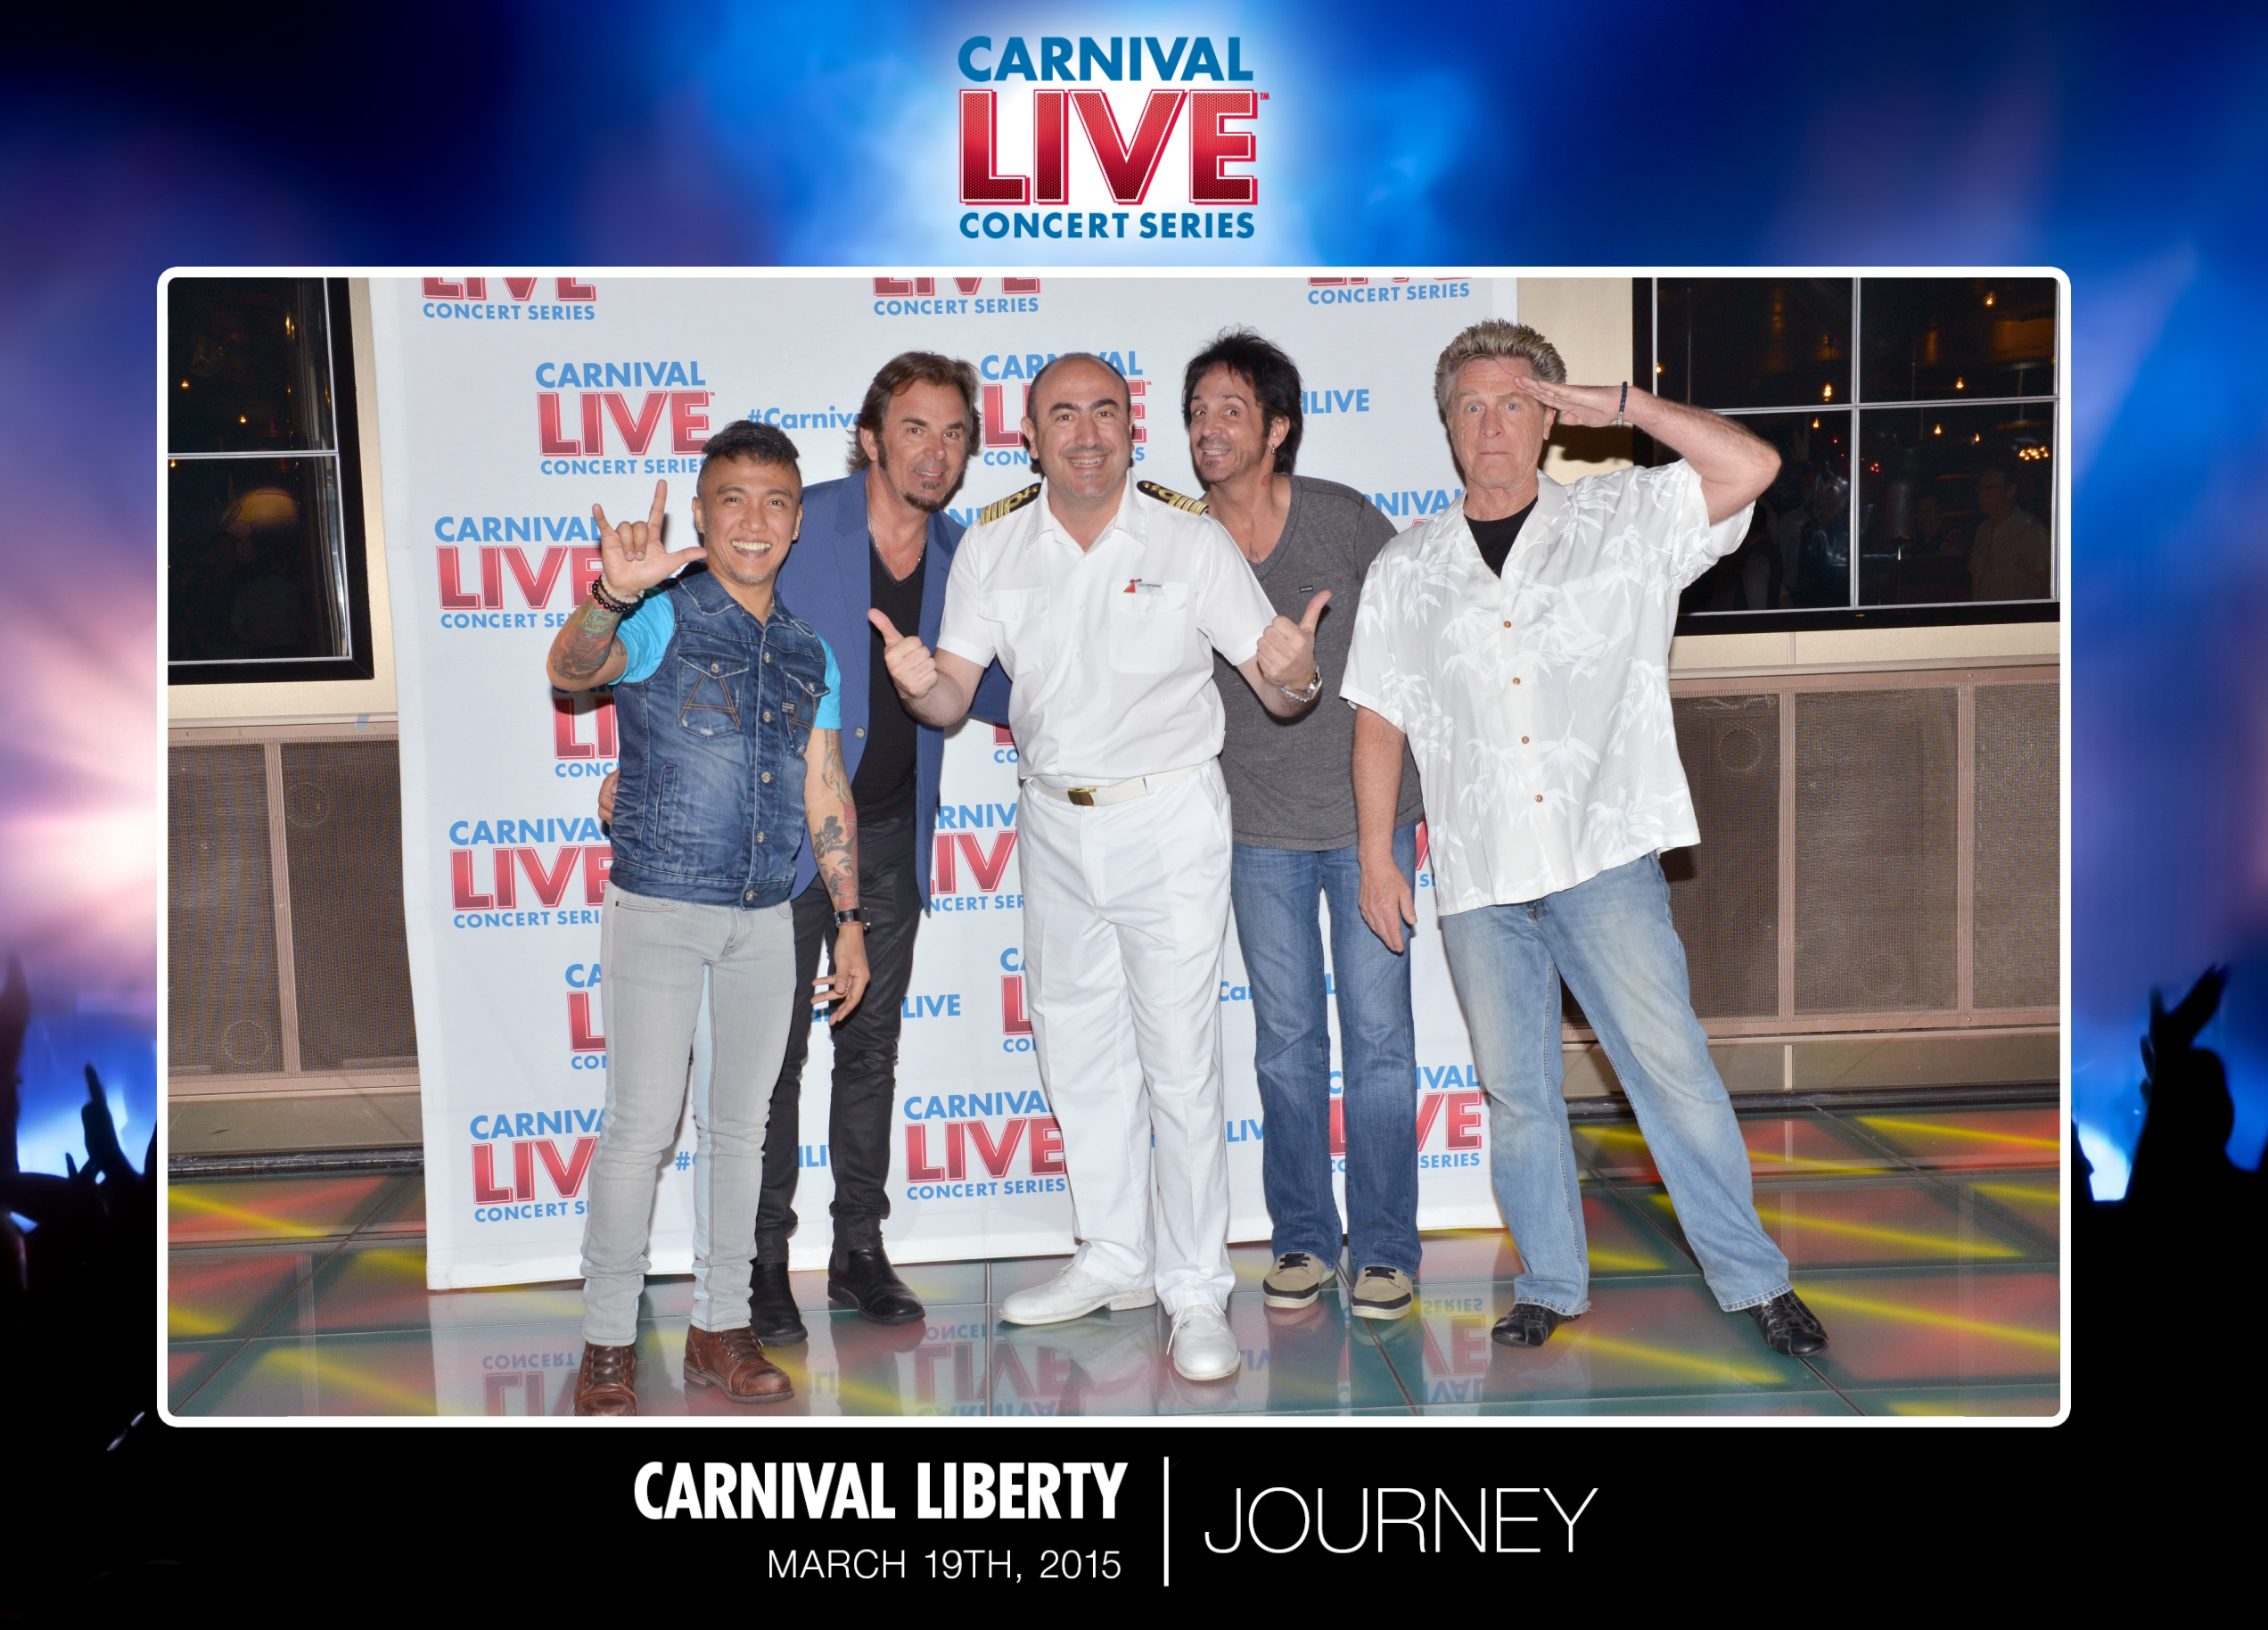 Concerts by Rock Legends Journey on Carnival Liberty and Carnival Splendor Kick Off Carnival LIVE's 2015 Spring Concert Series